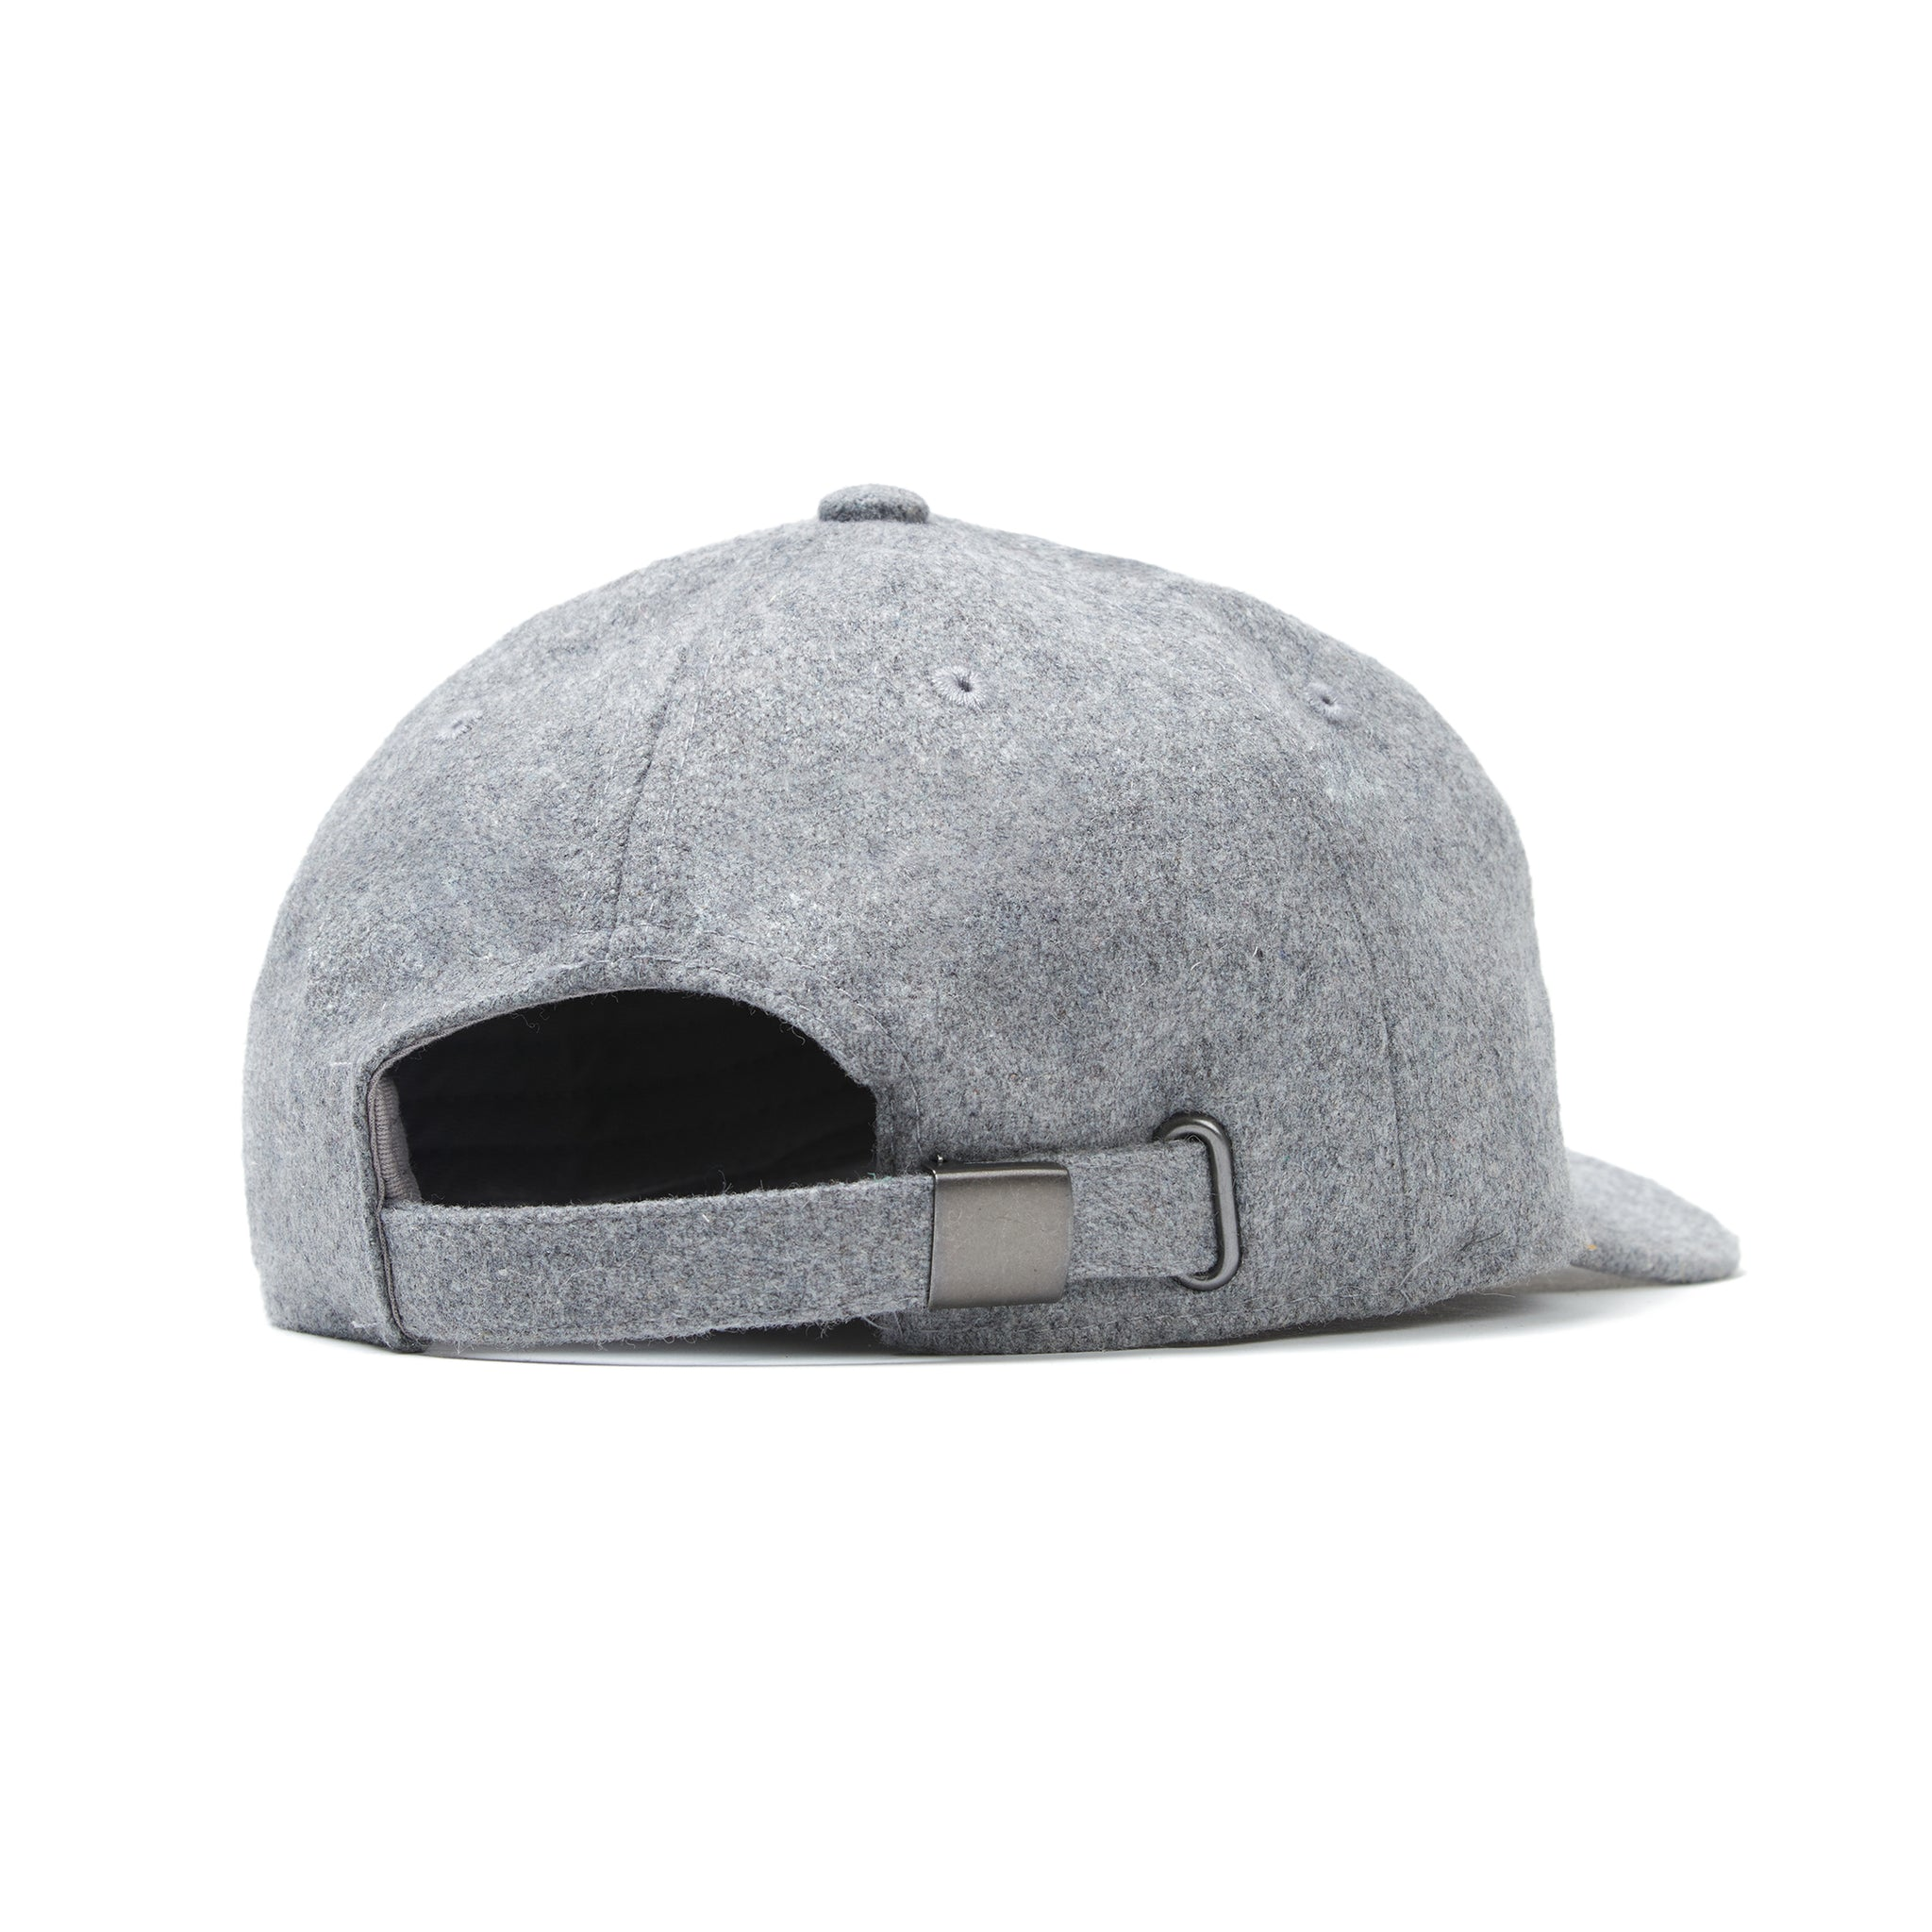 ND Academy Ballcap - Steel Grey Wool